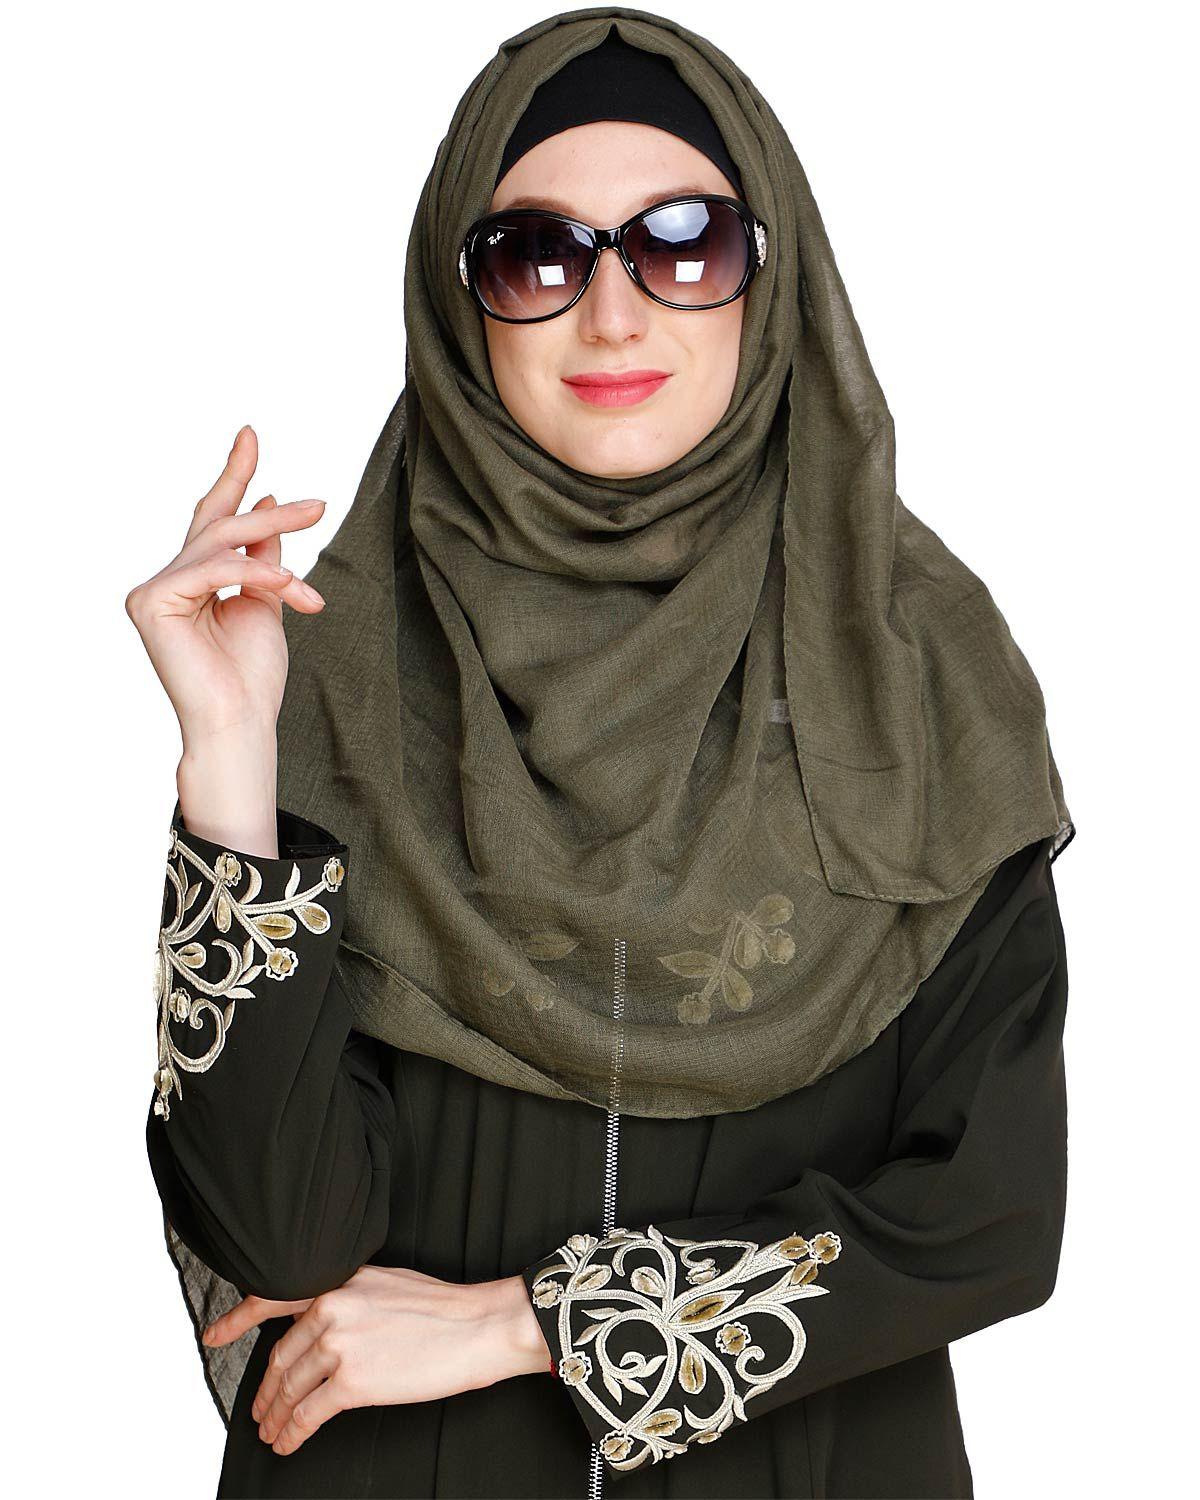 Maintain your Hijabs in Good Condition